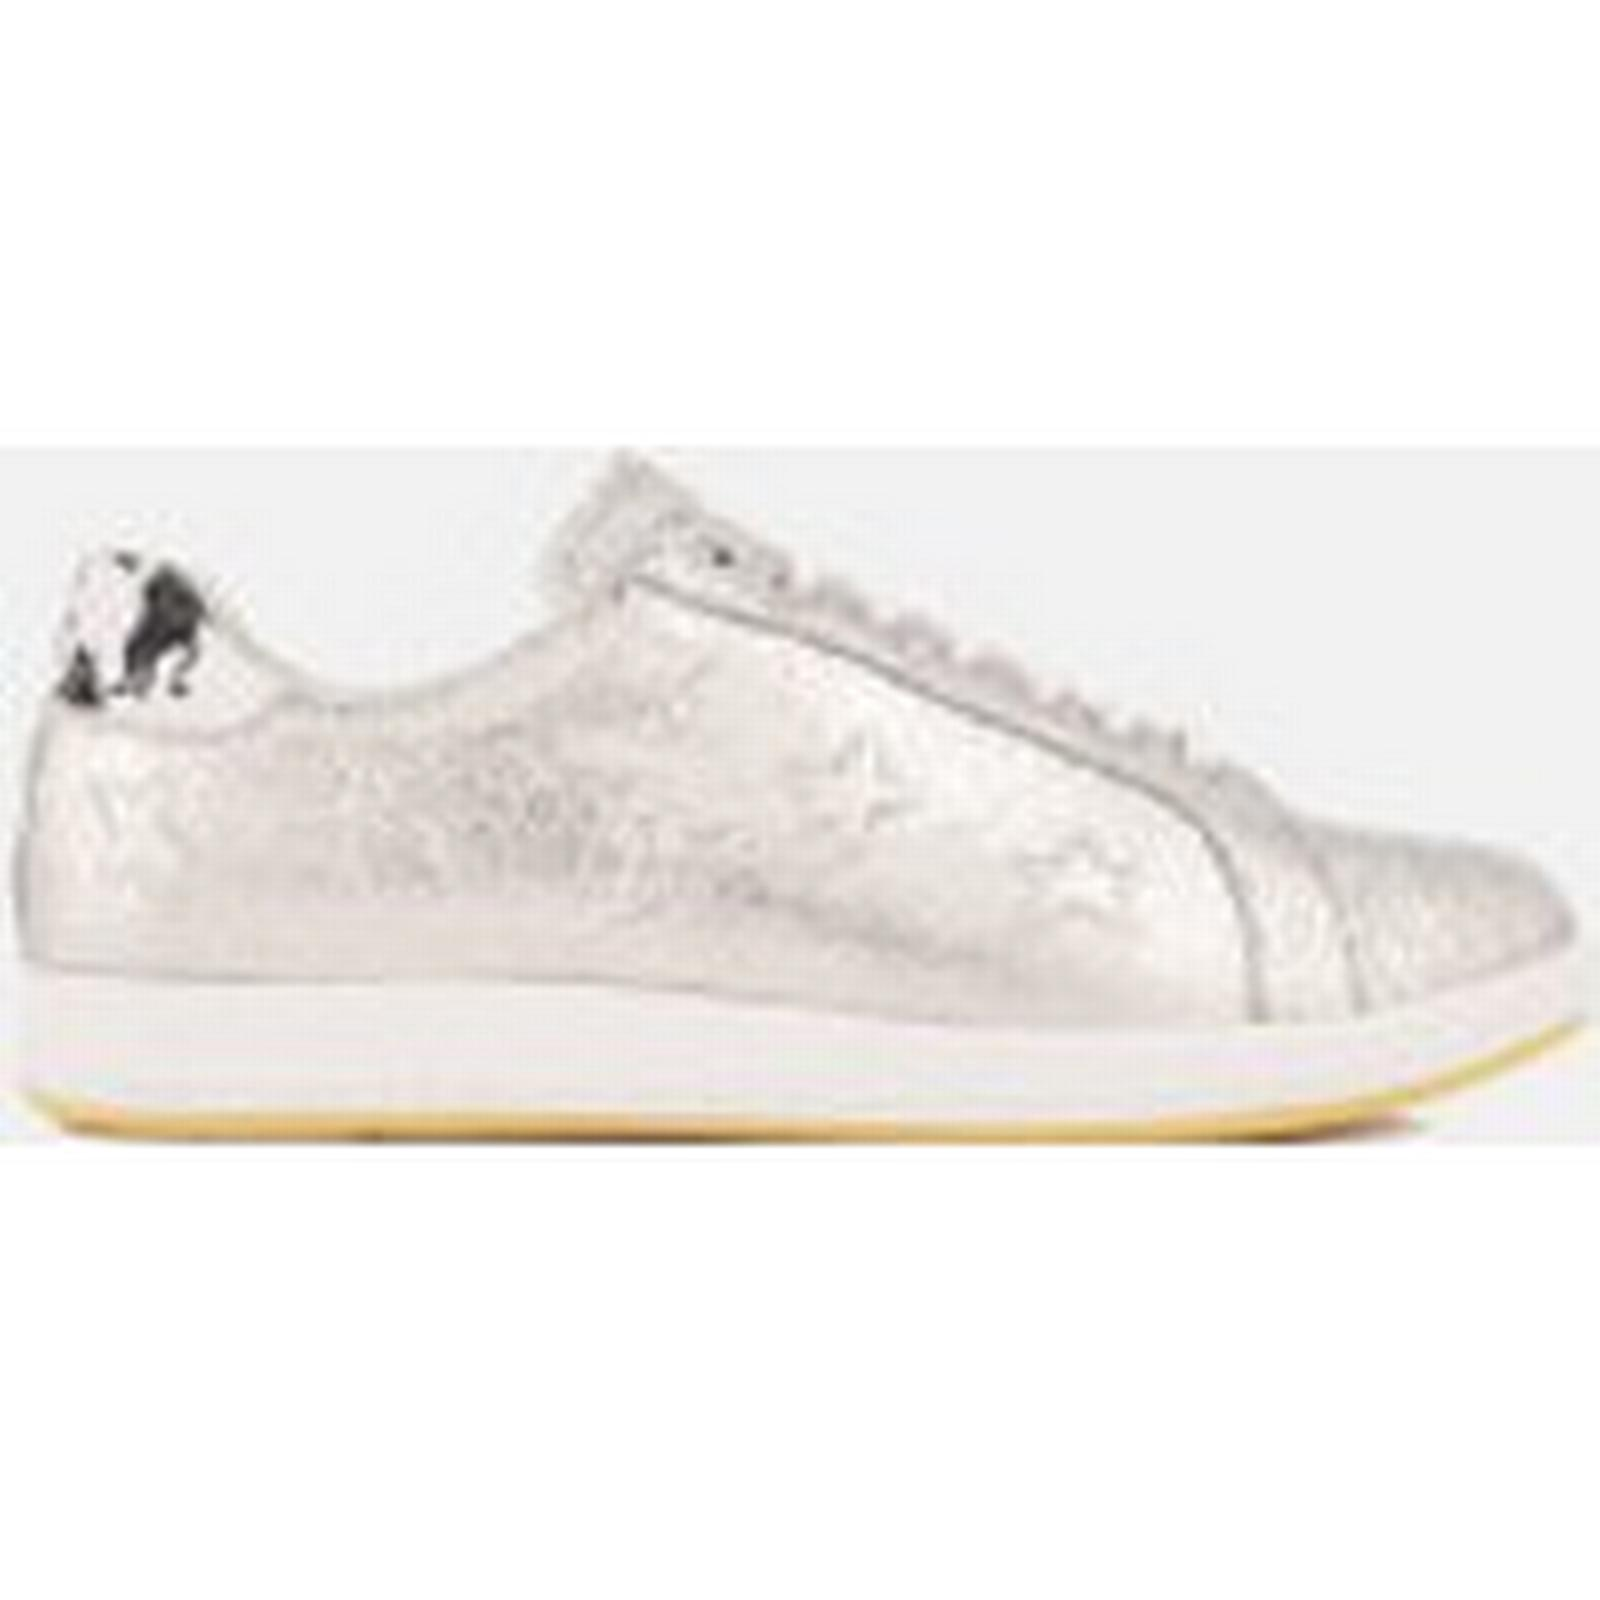 PS by Paul Smith Trainers Women's Lapin Leather Court Trainers Smith - Metallic Silver - UK 3 - Silver f1dd3f